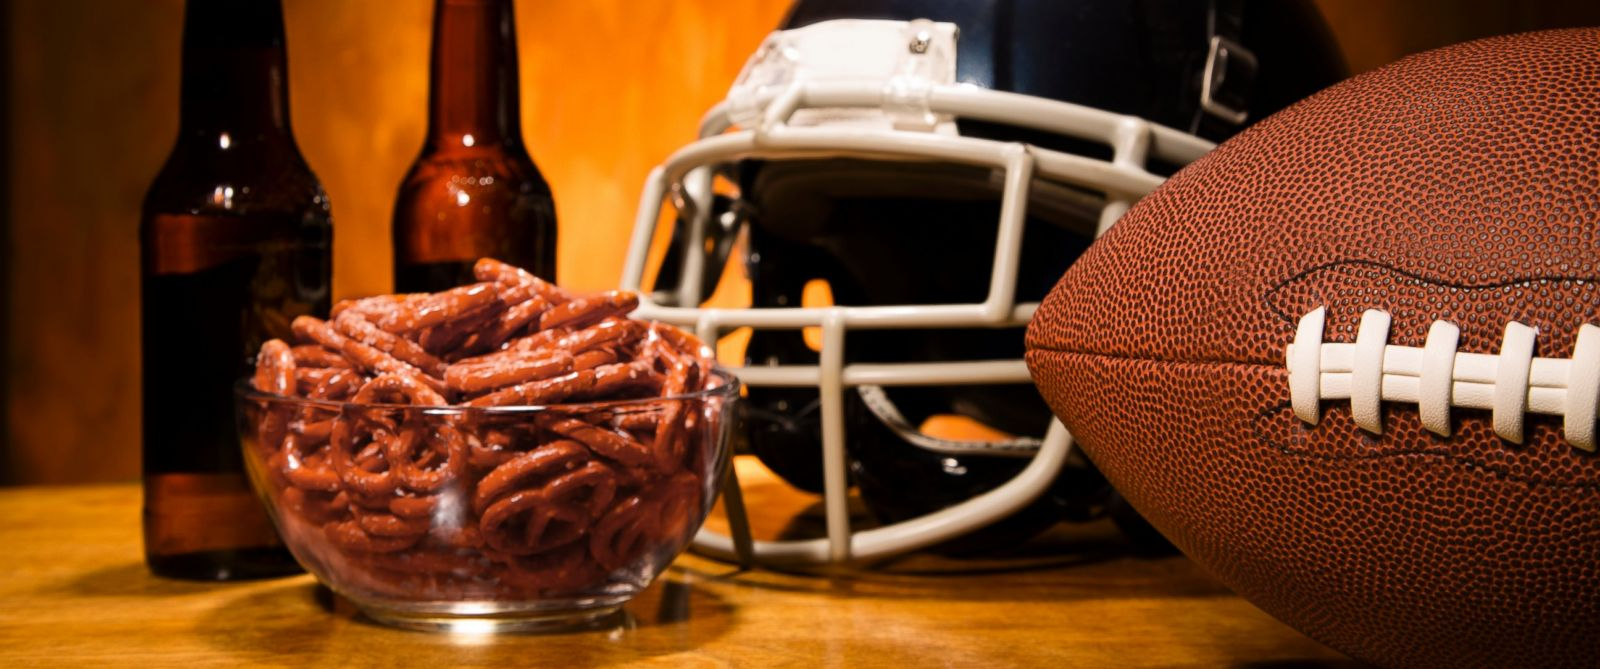 PHOTO: Football helmet and football on table with pretzels and beer. Superbowl party!